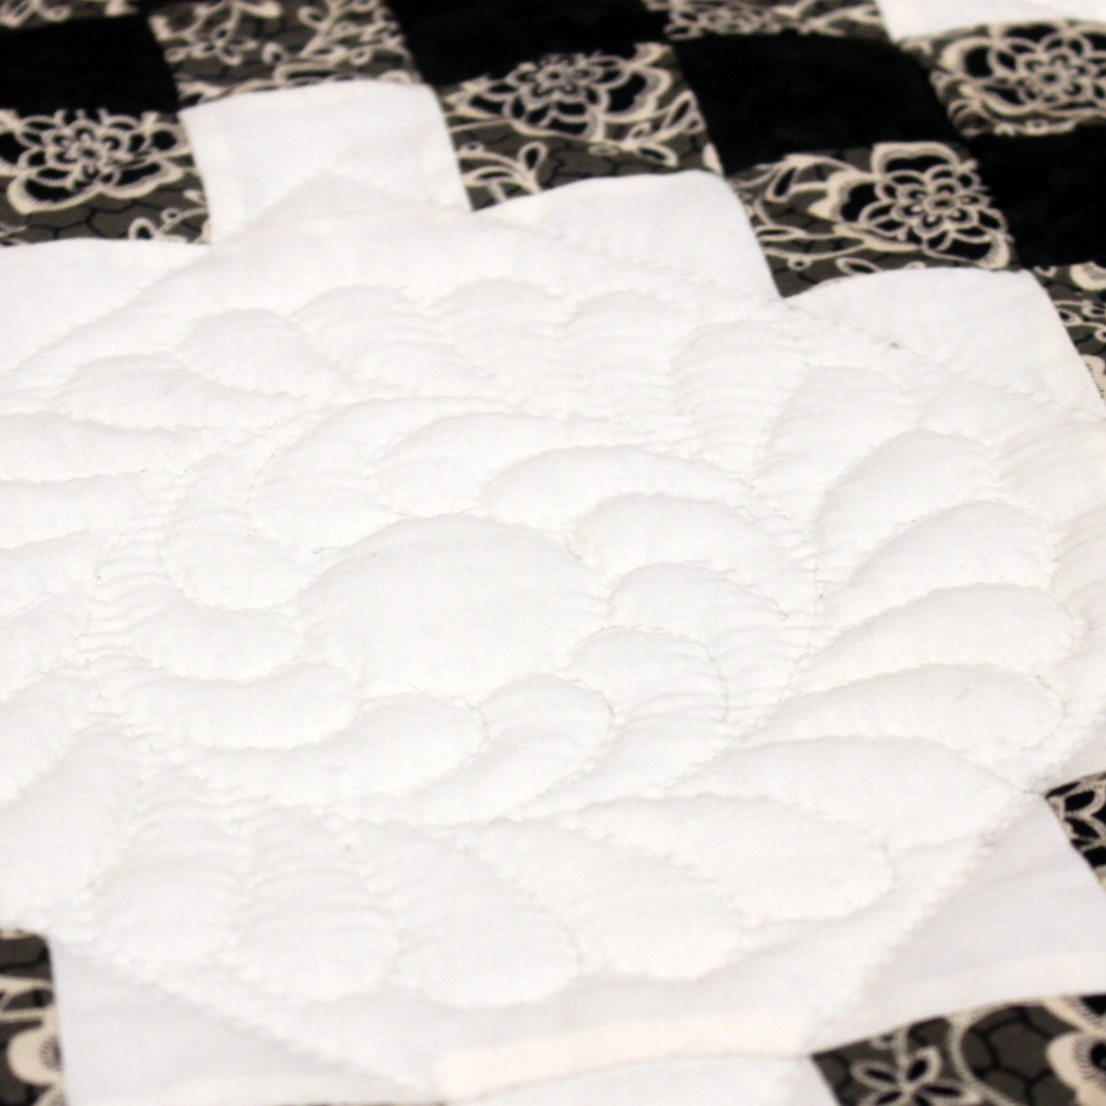 Amish Twin Quilt | Irish Chain Quilt Twin | Amish Quilts for sale ... : amish hand quilting - Adamdwight.com